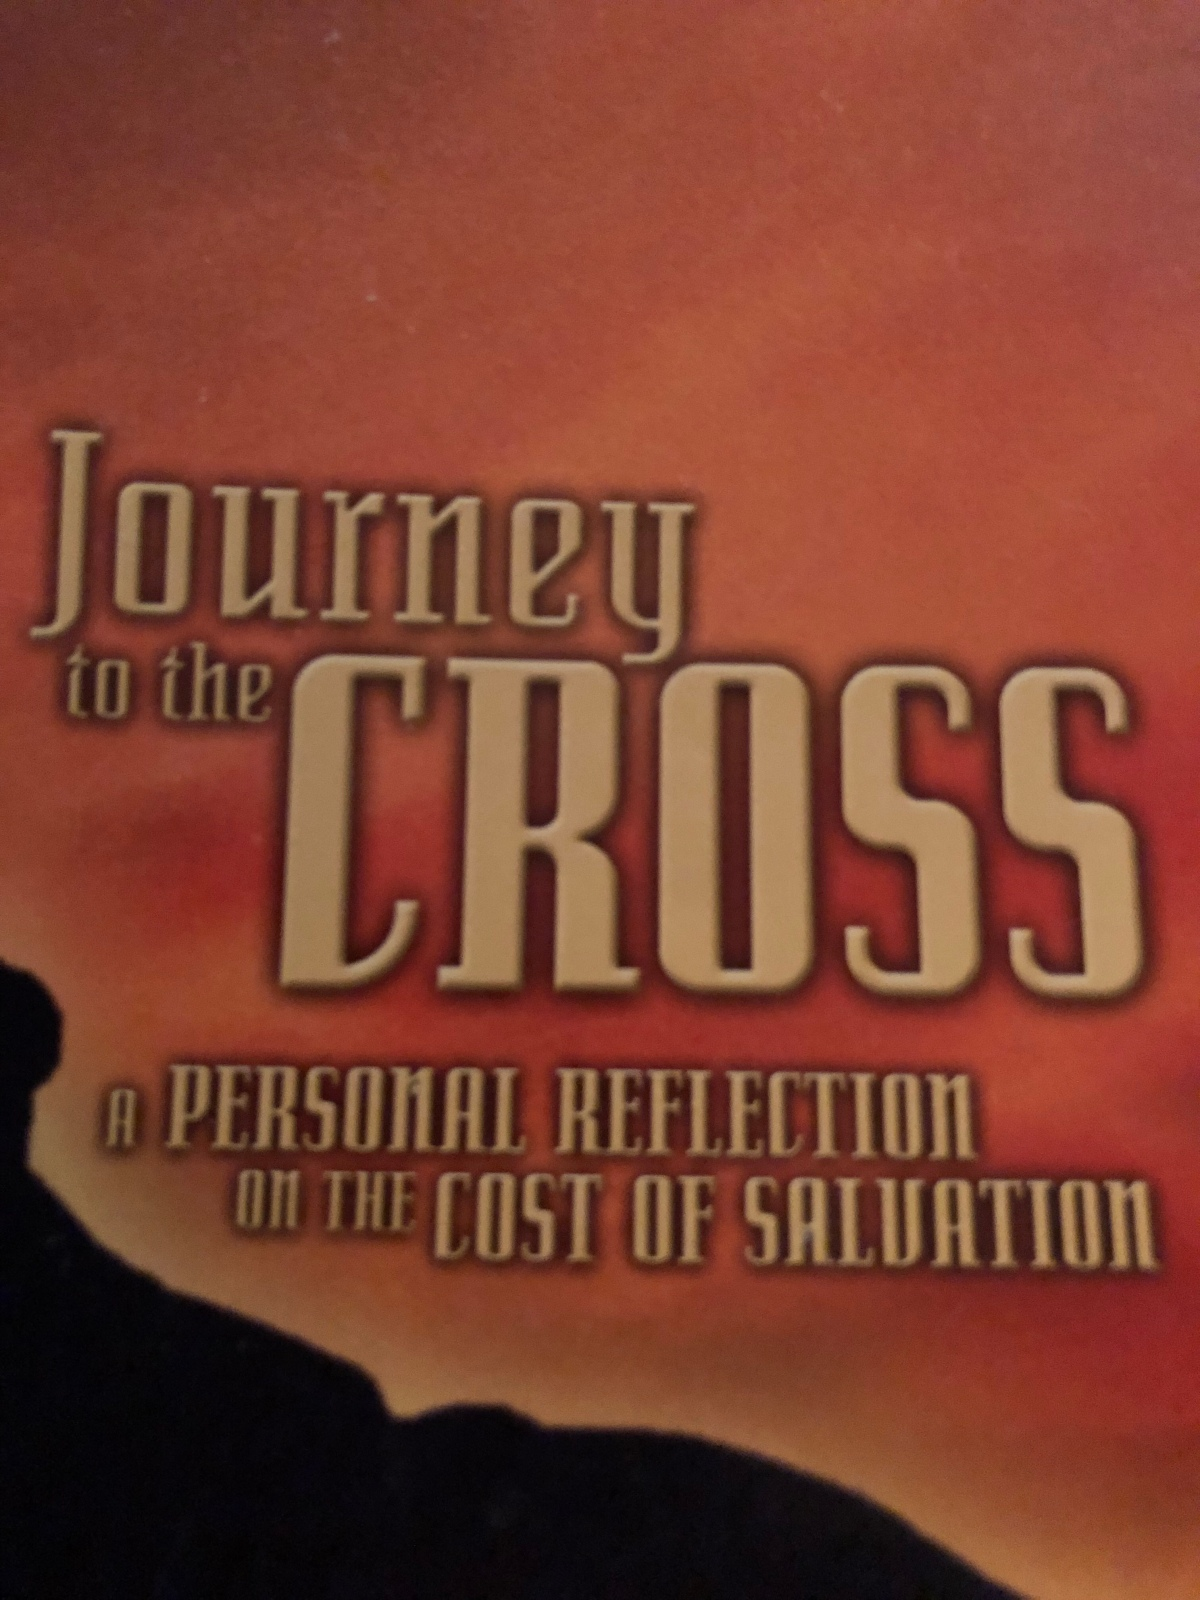 The Journey to the Cross. Day 2